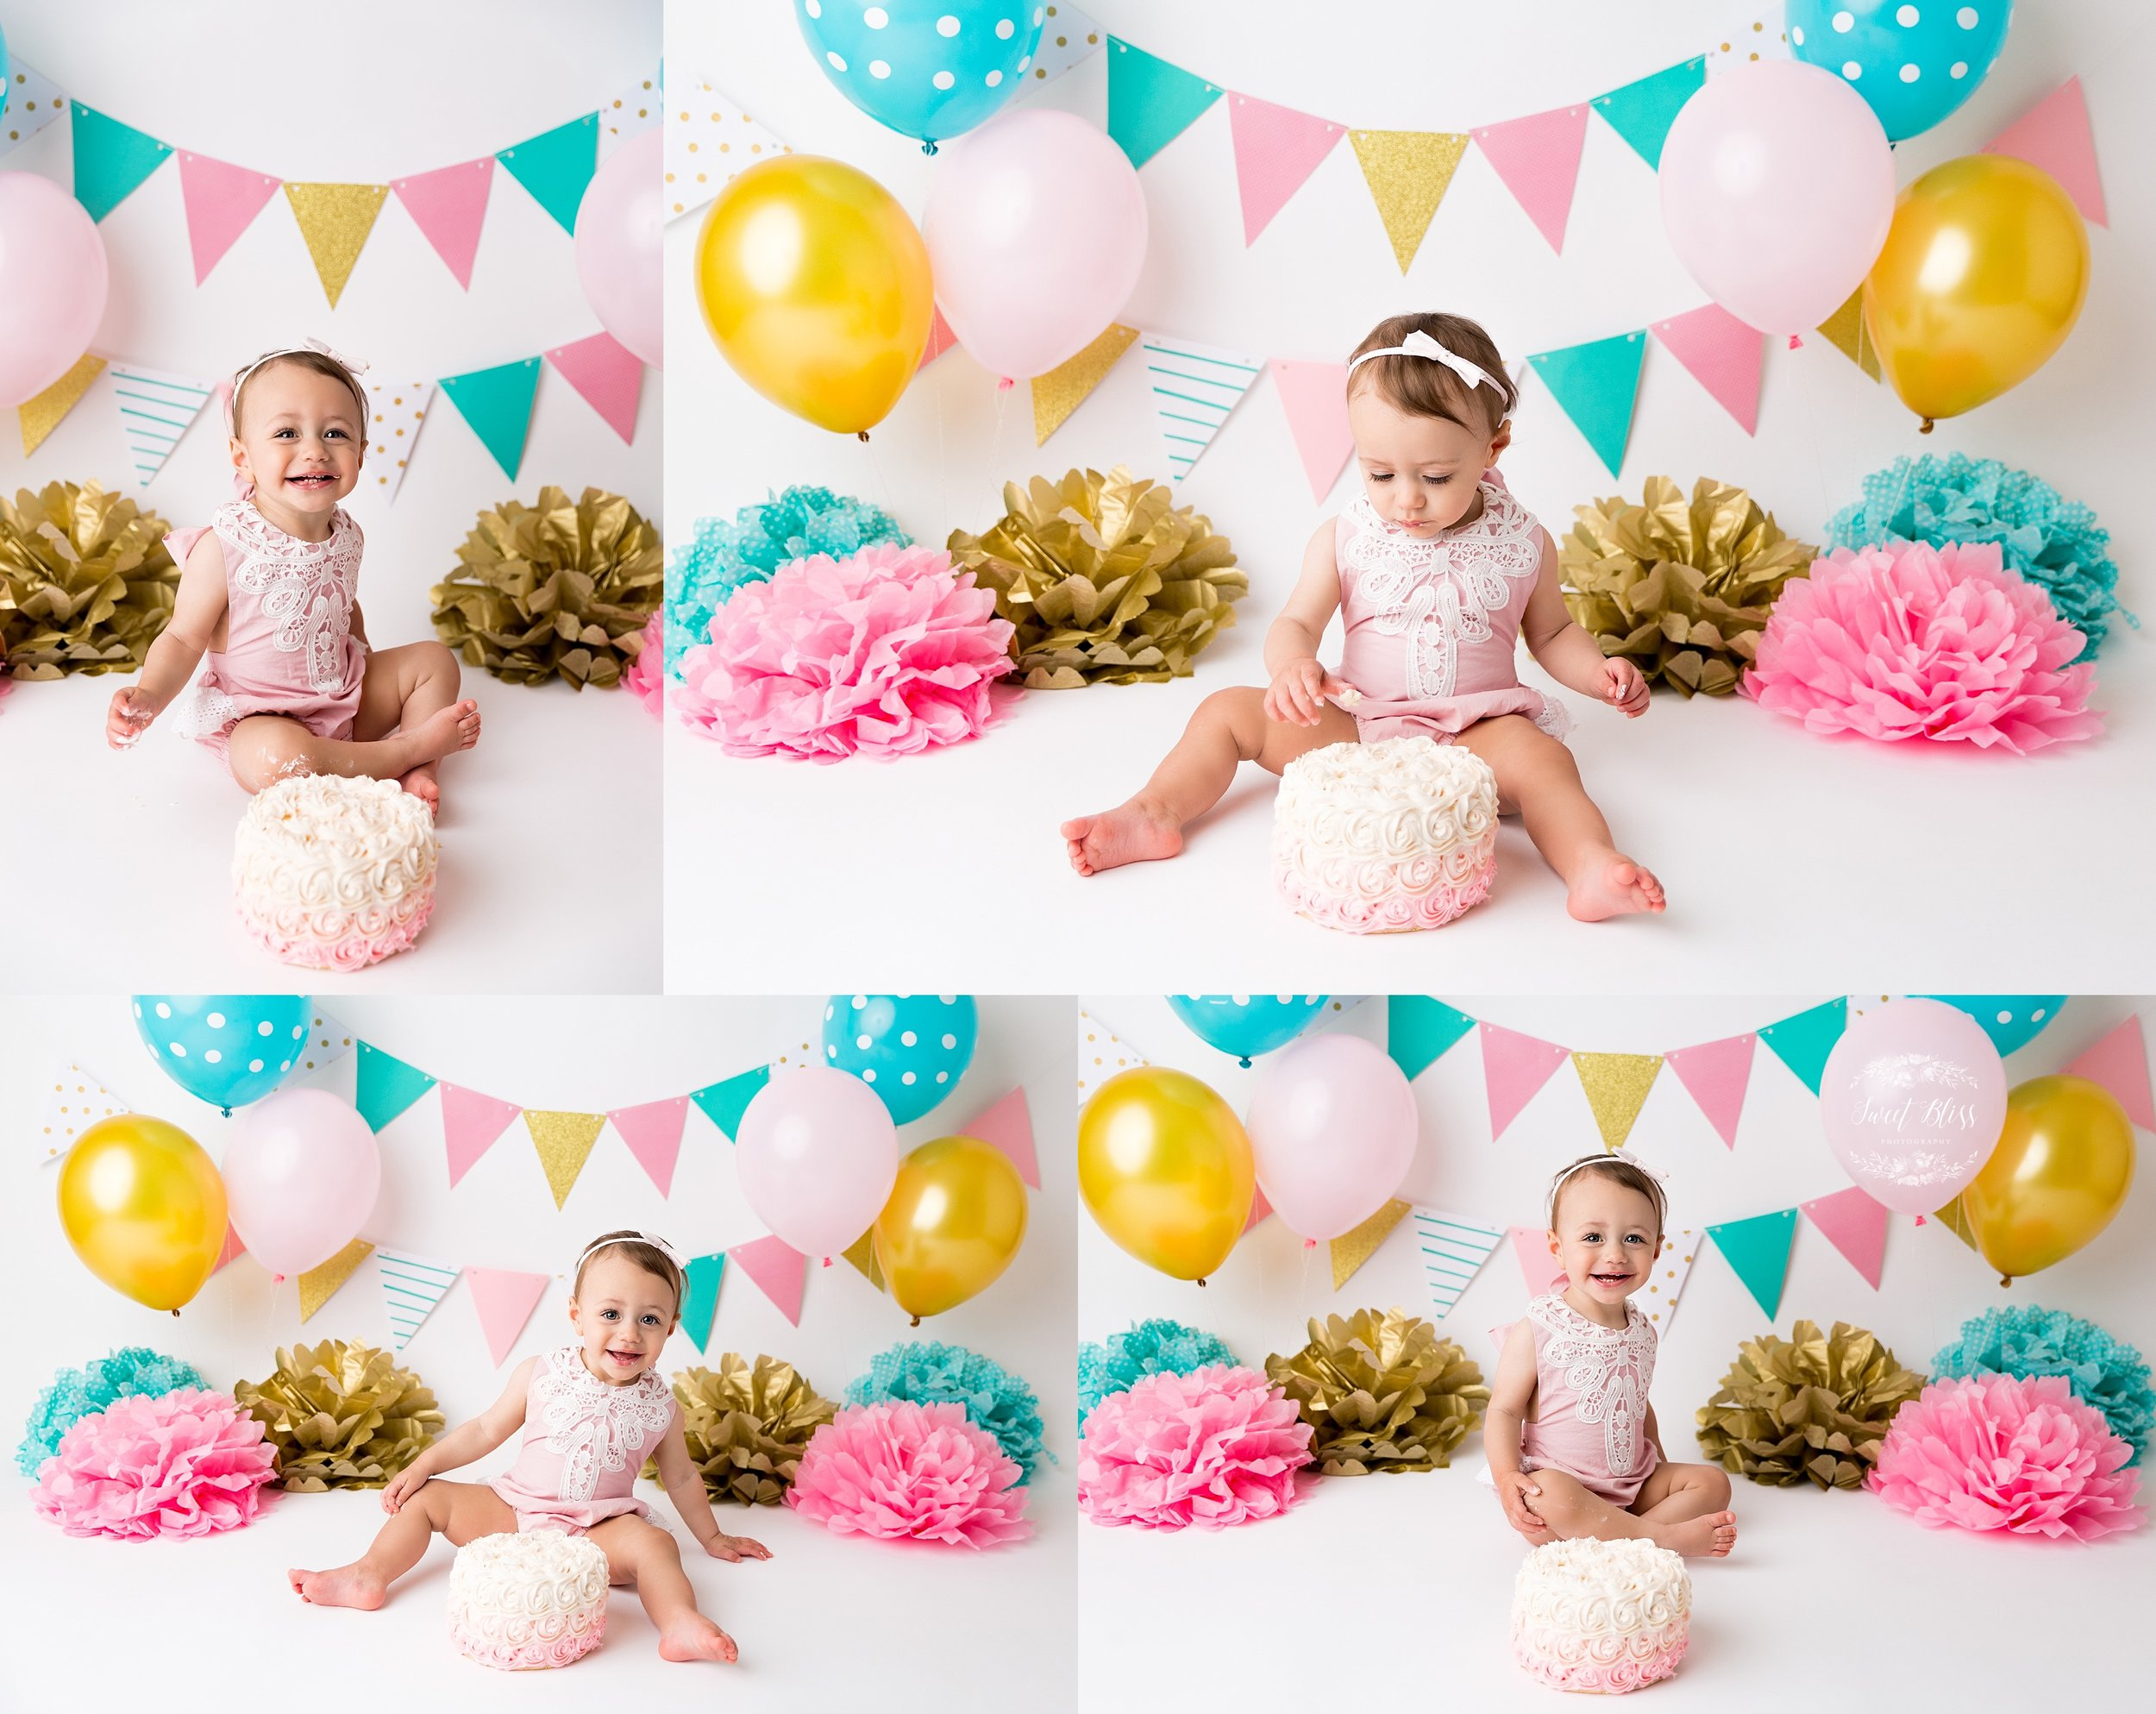 Cakesmash_SweetBlissphotography_marylandphotographer-30.jpg